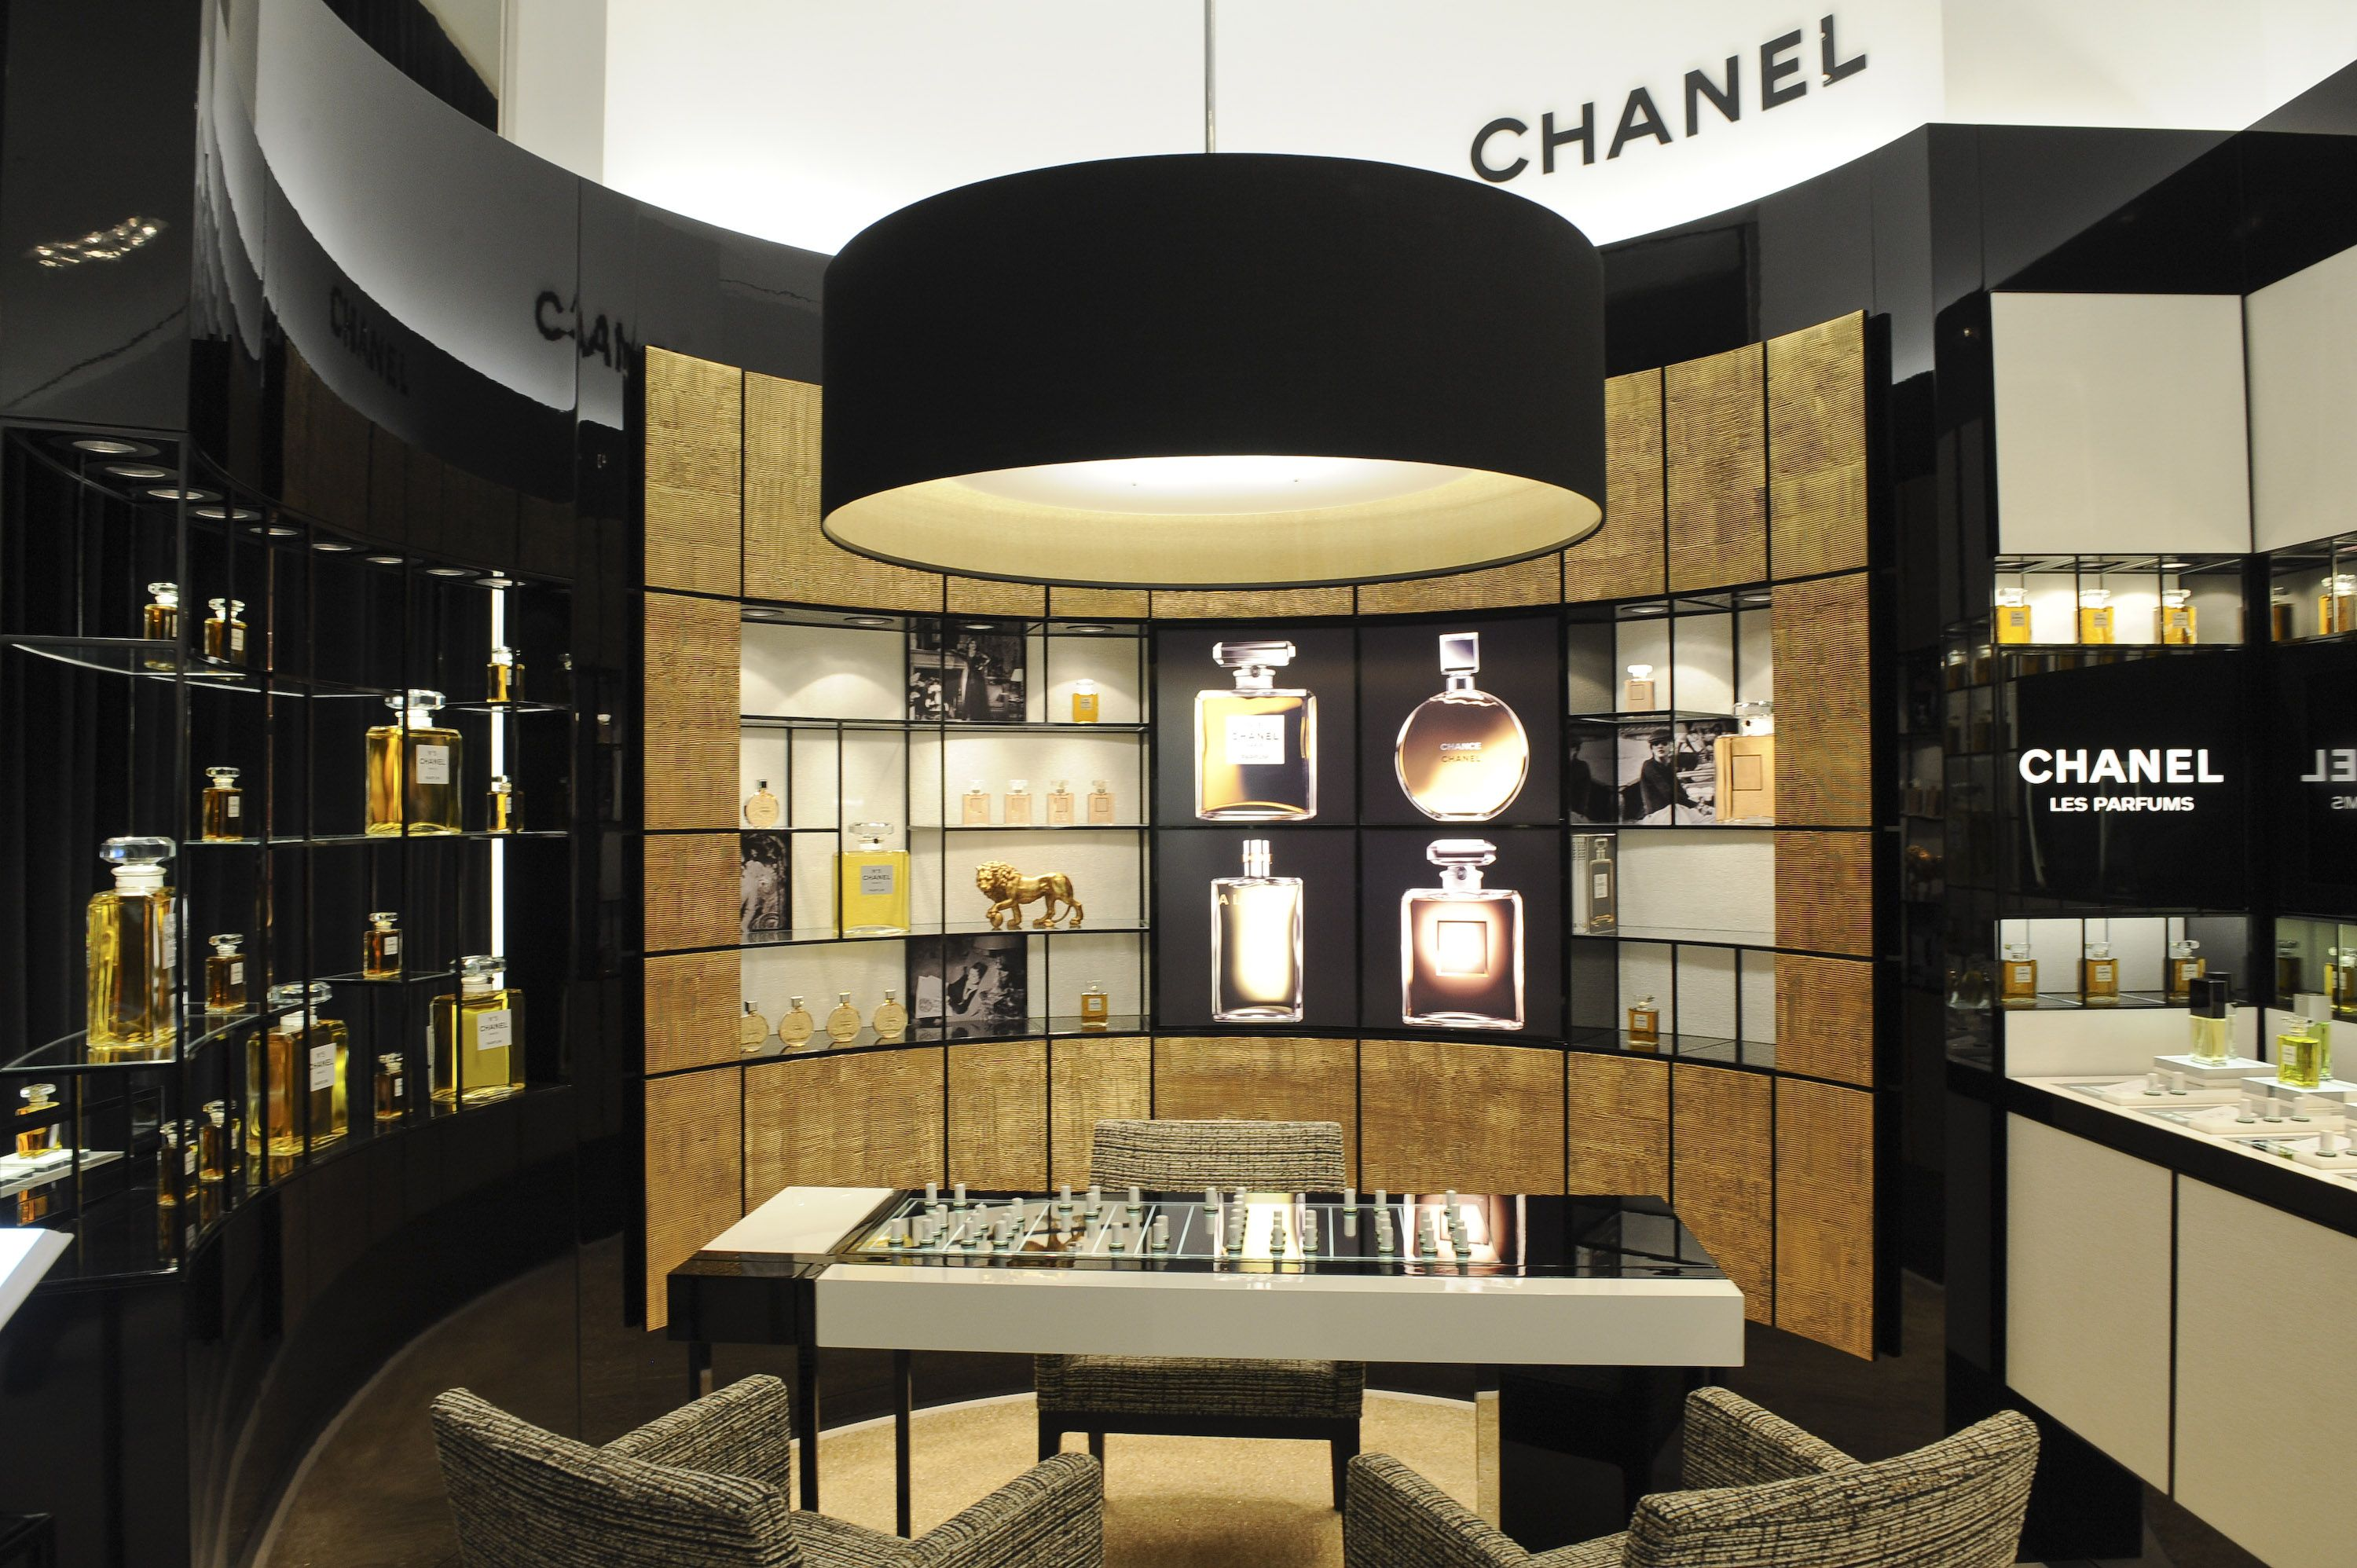 When I Run Chanel With Images Perfume Display